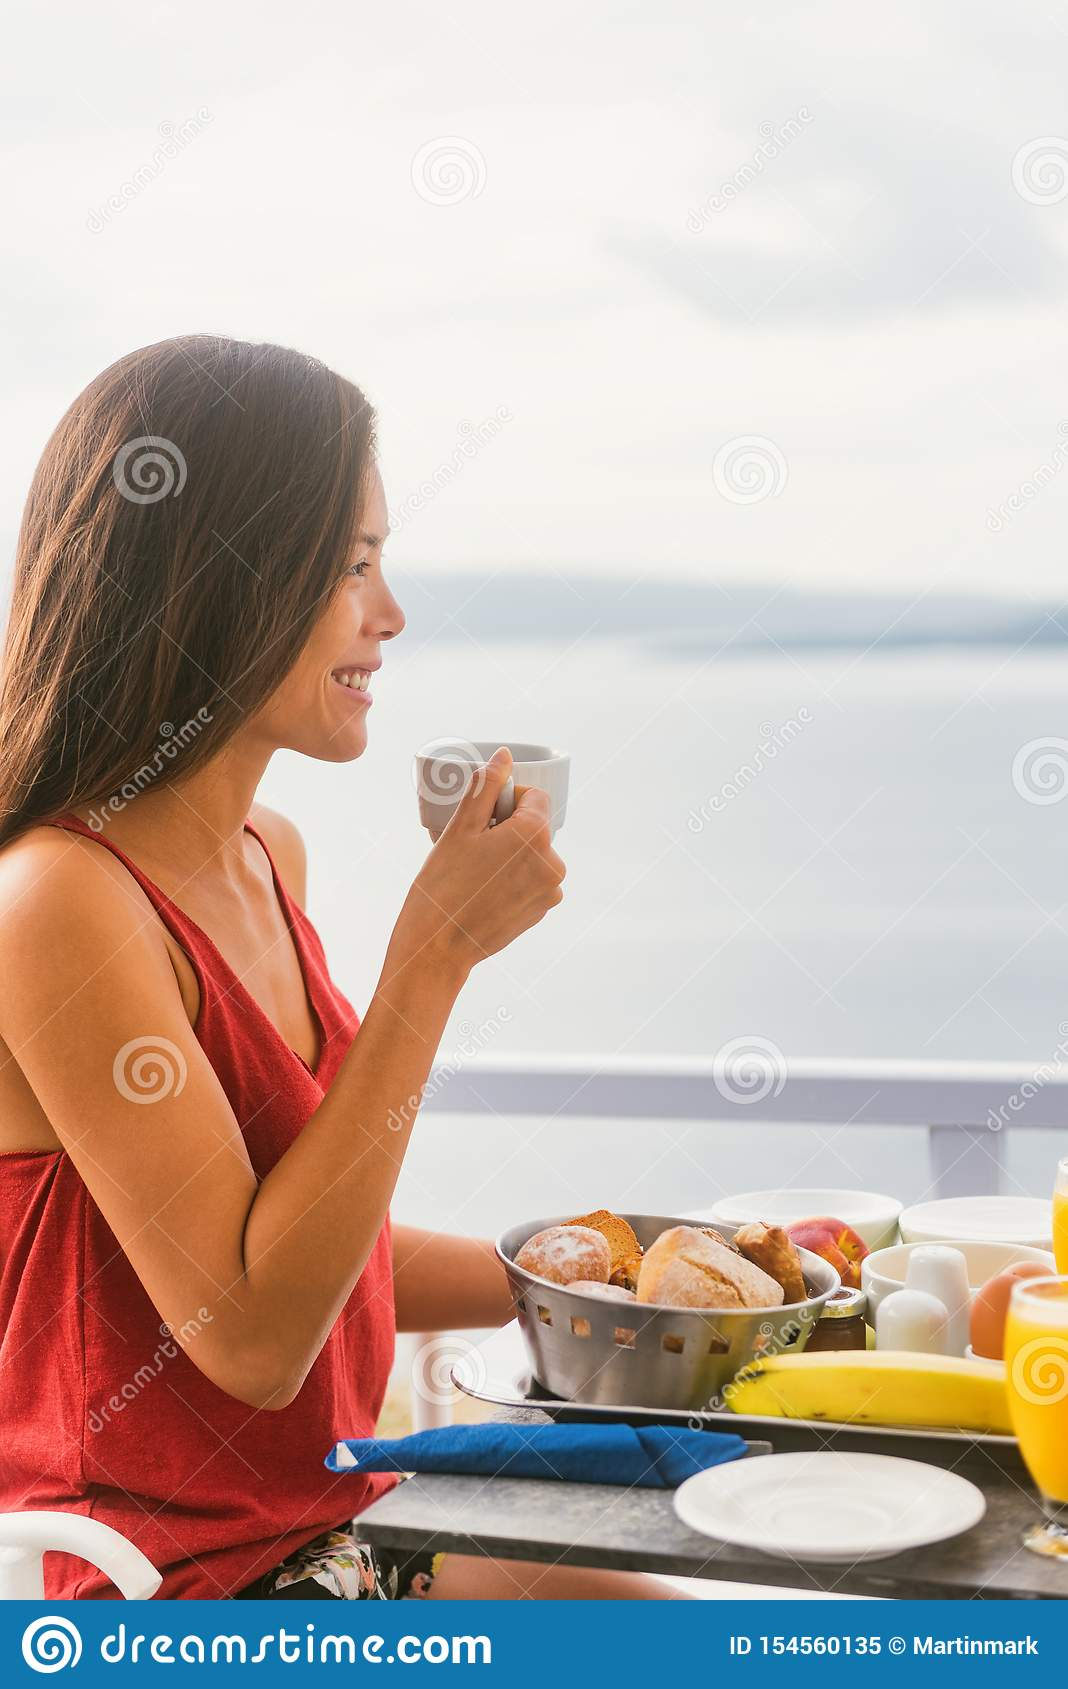 Coffee drink happy Asian woman drinking tea cup on morning breakfast outside in sun enjoying food at hotel restaurant or cruise